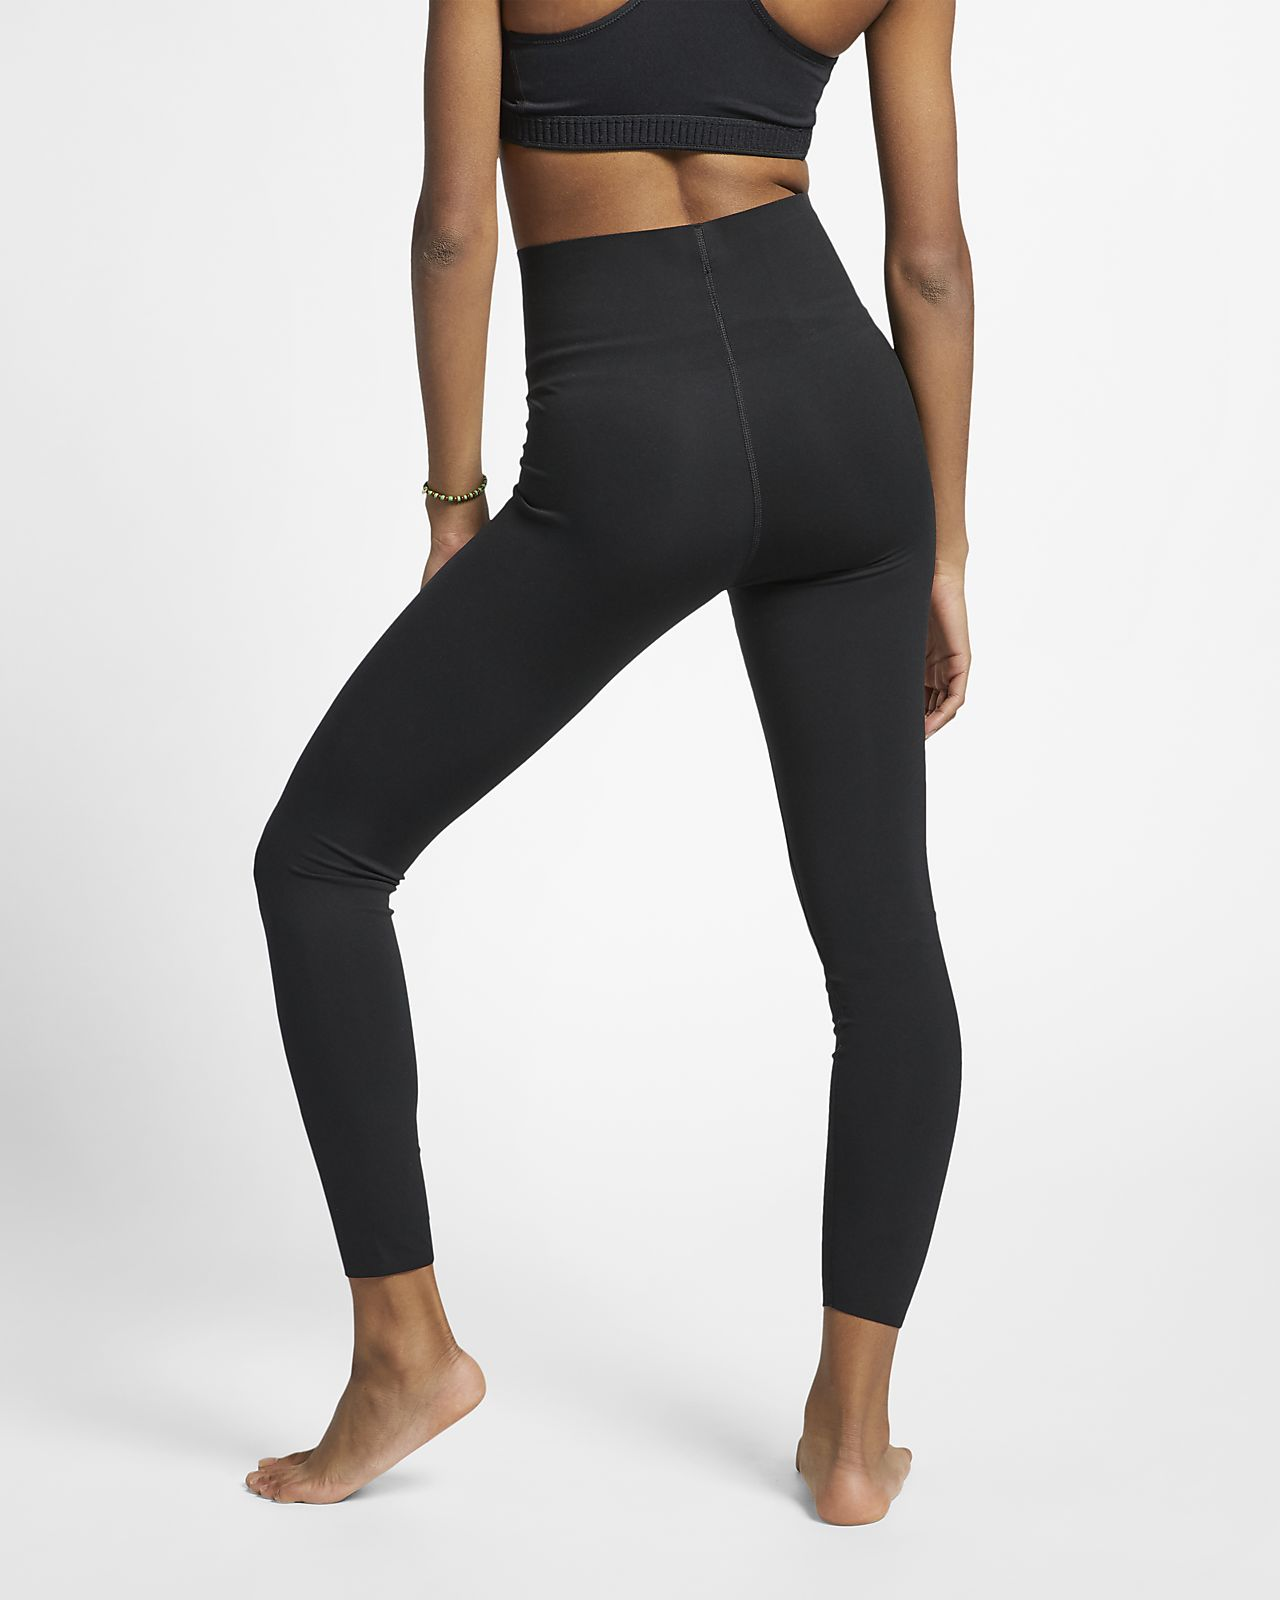 d2a382ddd0914 Nike Sculpt Lux Women's 7/8 Tights. Nike.com NZ